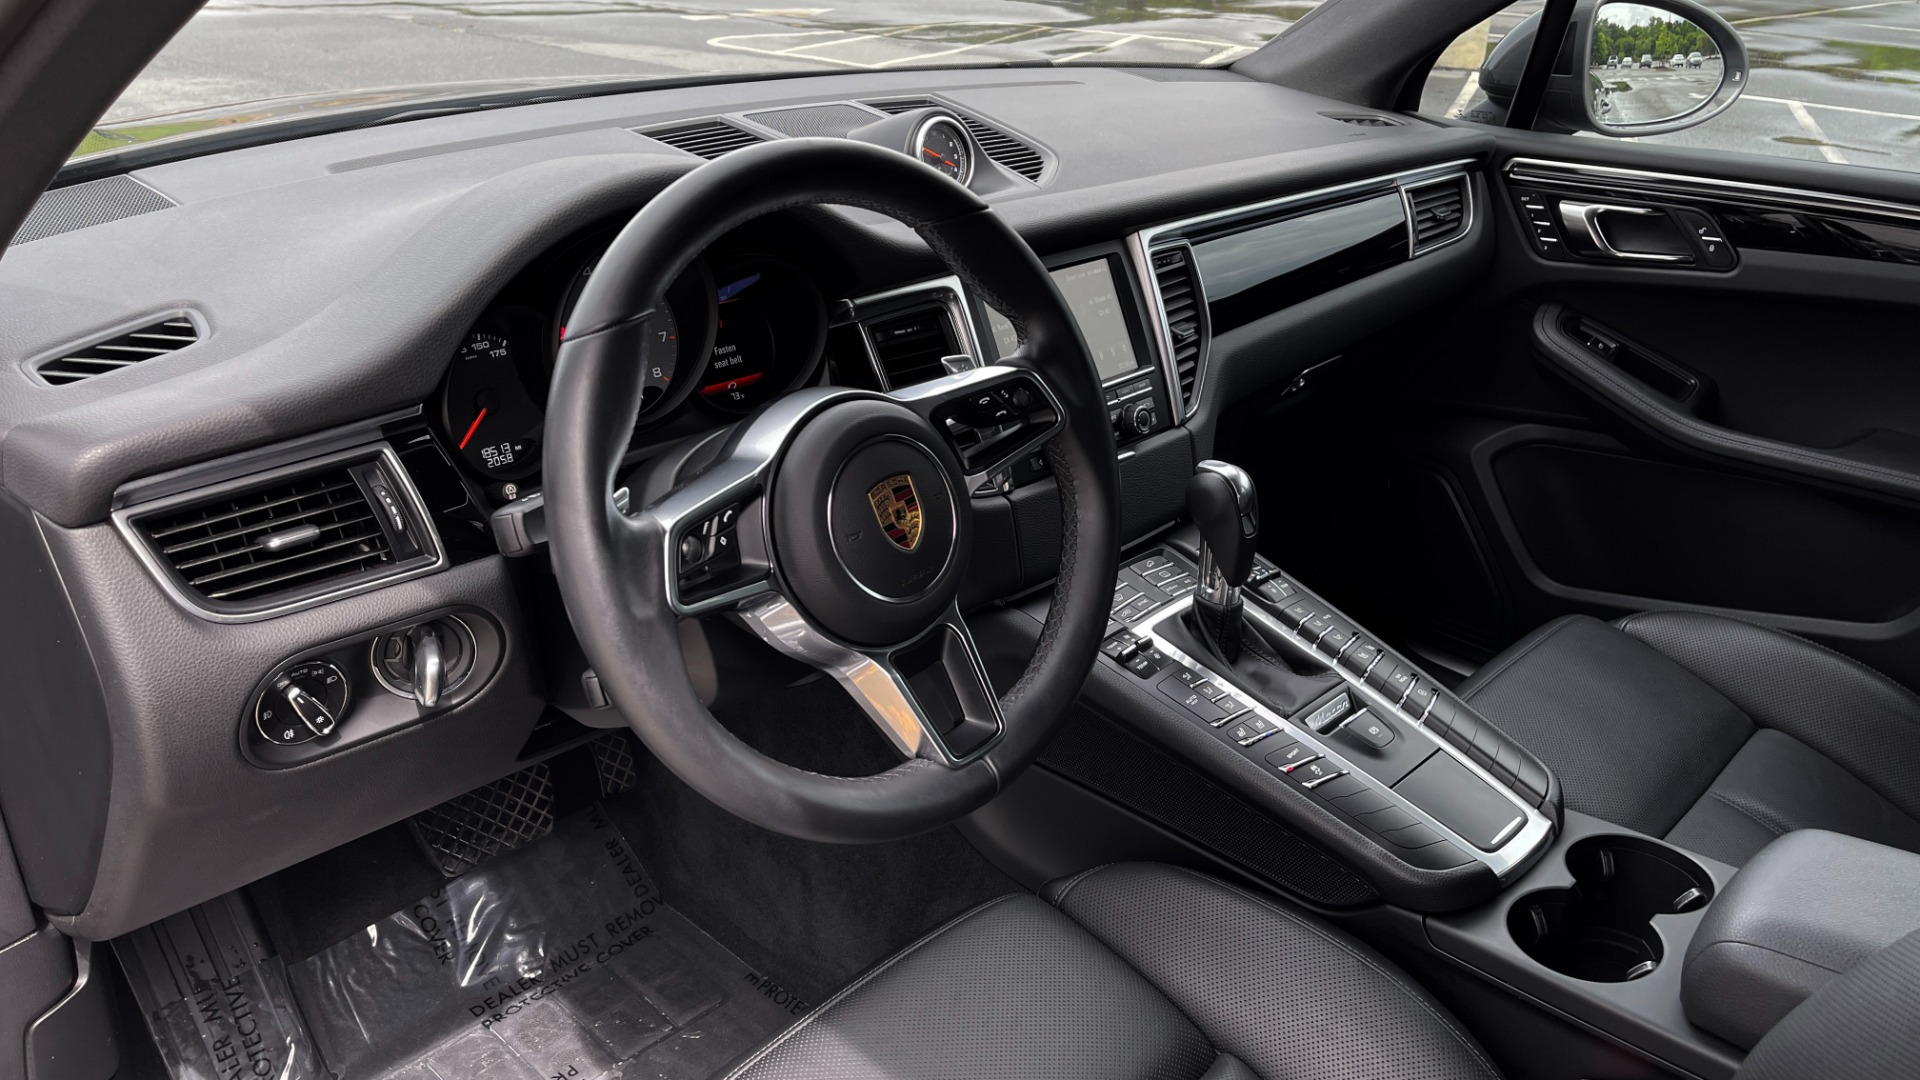 Used 2016 Porsche MACAN S PREMIUM PLUS / AWD / NAV / BOSE / SUNROOF / LCA / PARK ASST / INFOTAINMEN for sale $45,256 at Formula Imports in Charlotte NC 28227 32